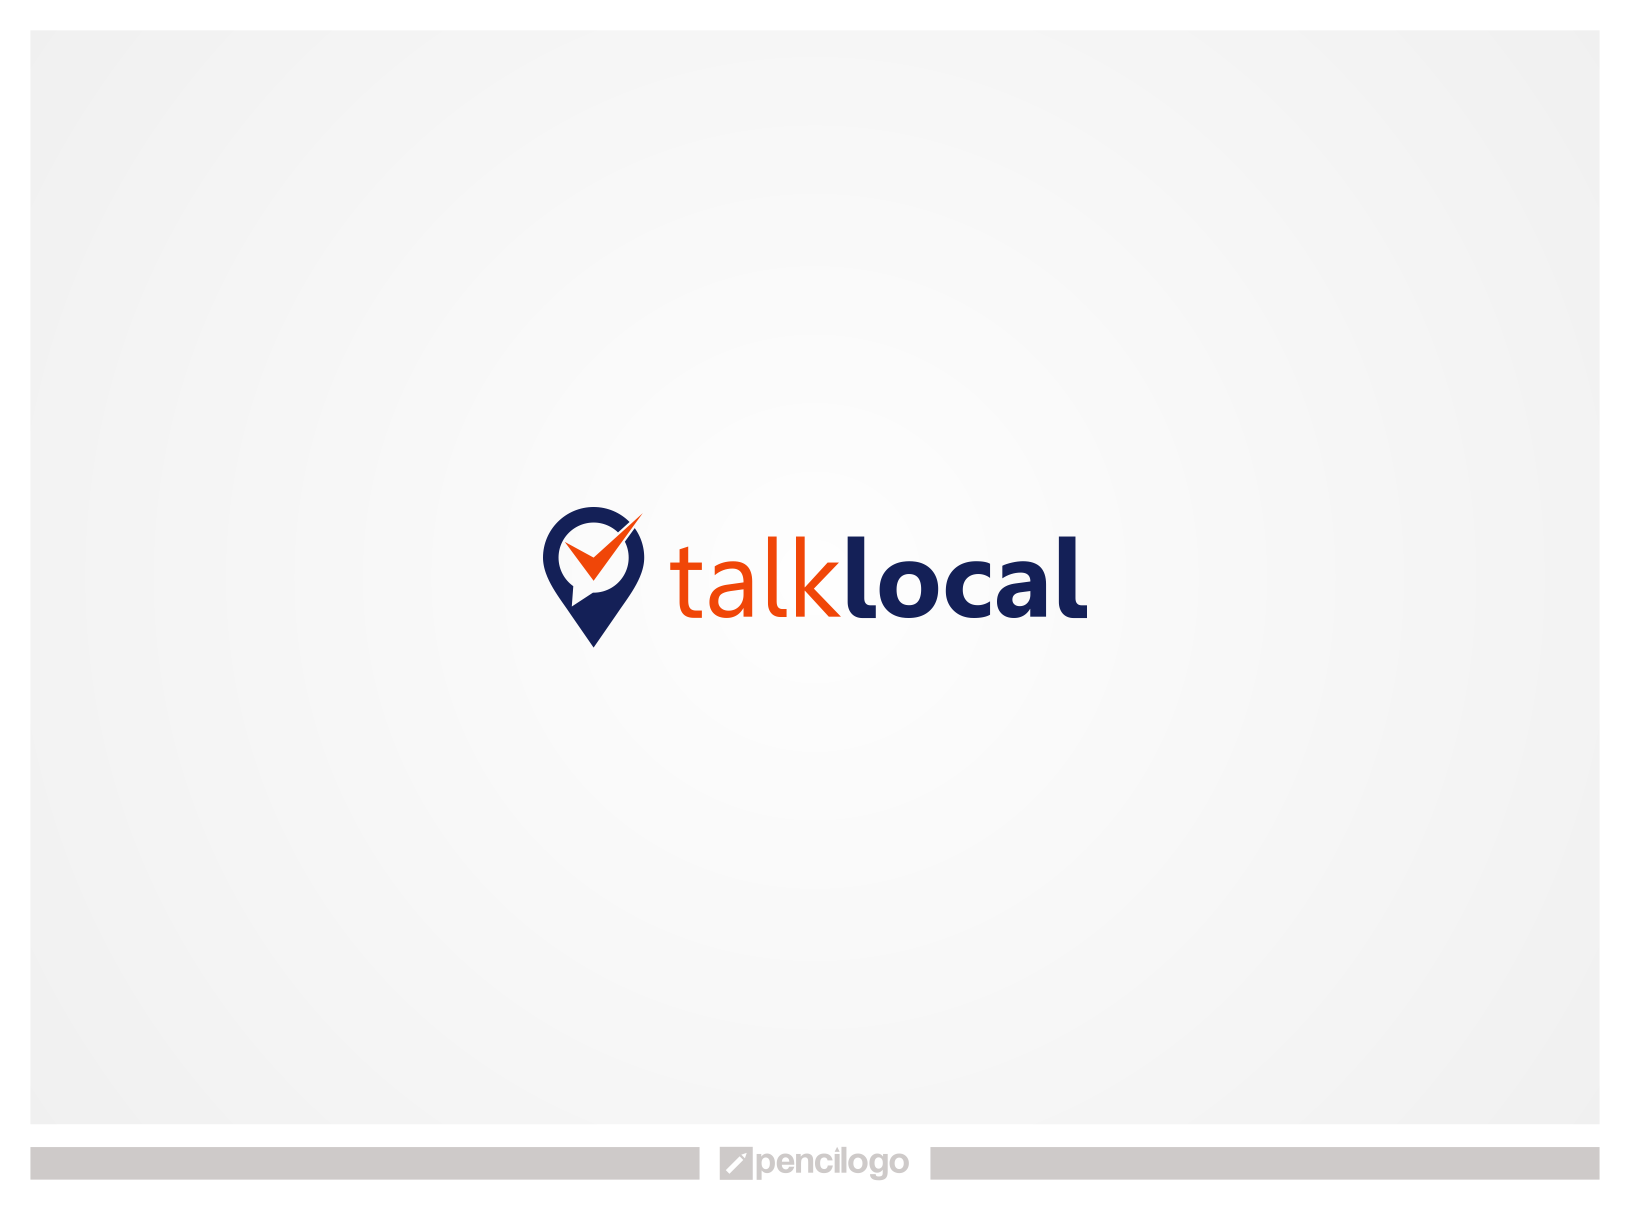 Create a logo that includes the name, Talk Local, along with an image that represents our business